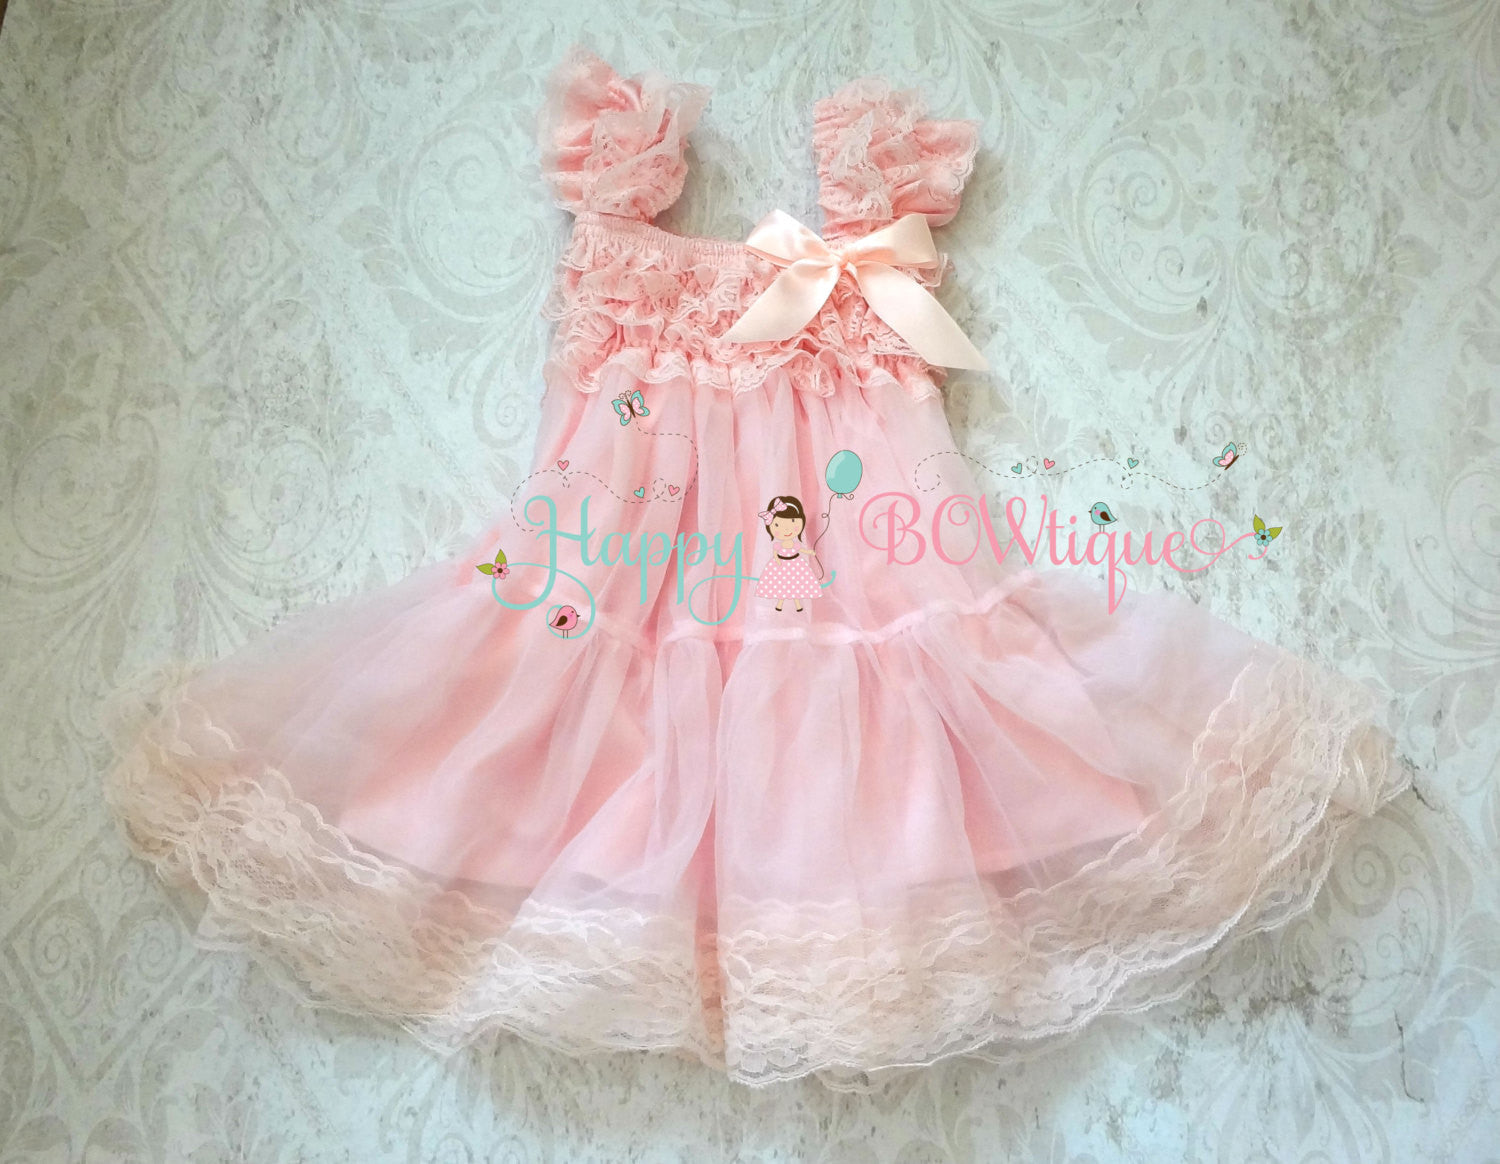 Flower girl dress/ Girl's Princess Flower Pink Chiffon Dress set - Happy BOWtique - children's clothing, Baby Girl clothing